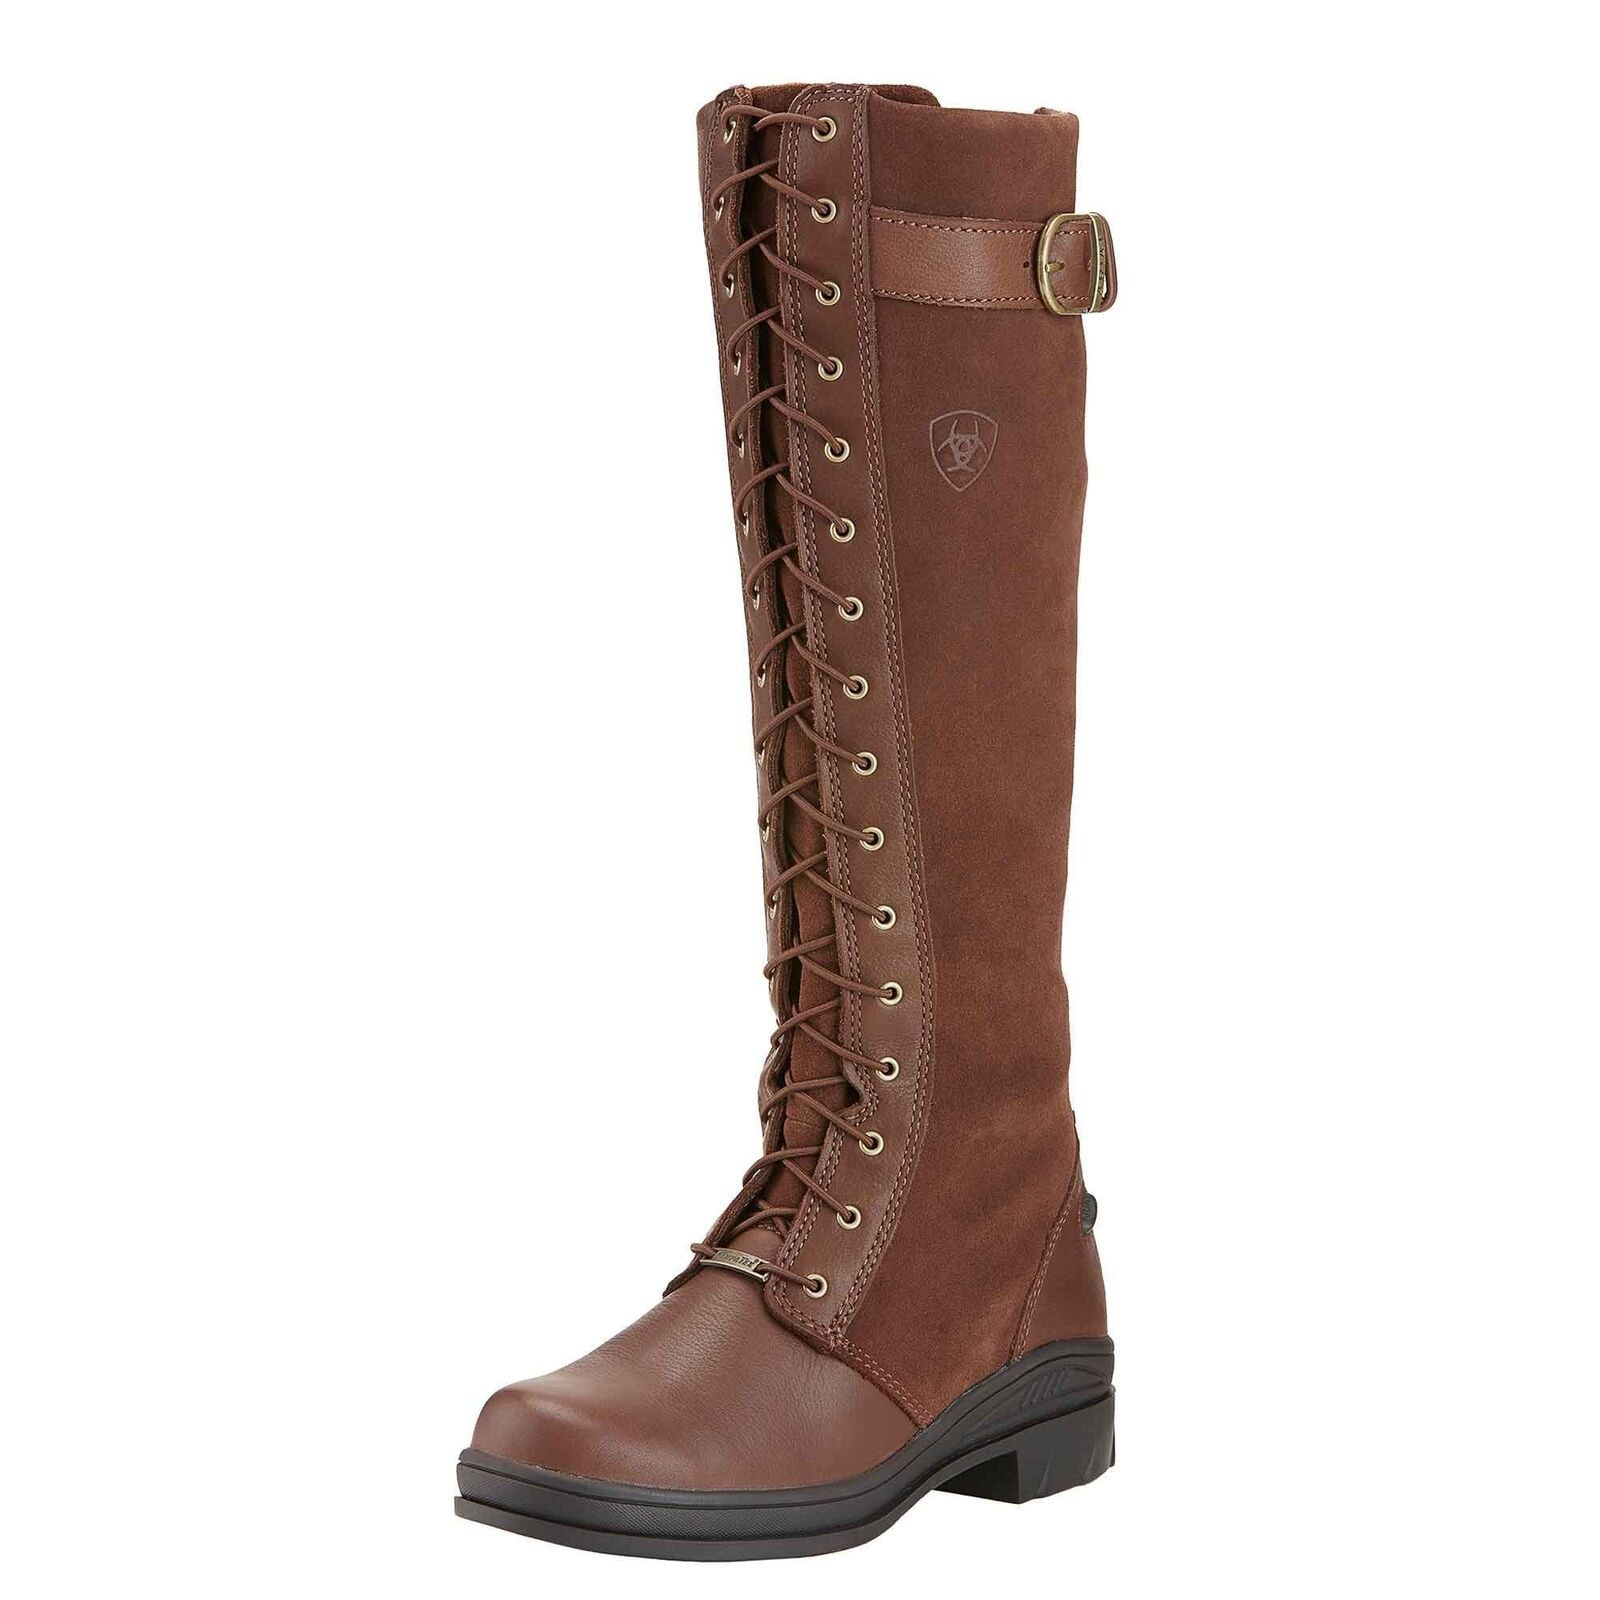 Ariat Coniston Waterproof Insulated Boots Chocolate UK EU SIZES